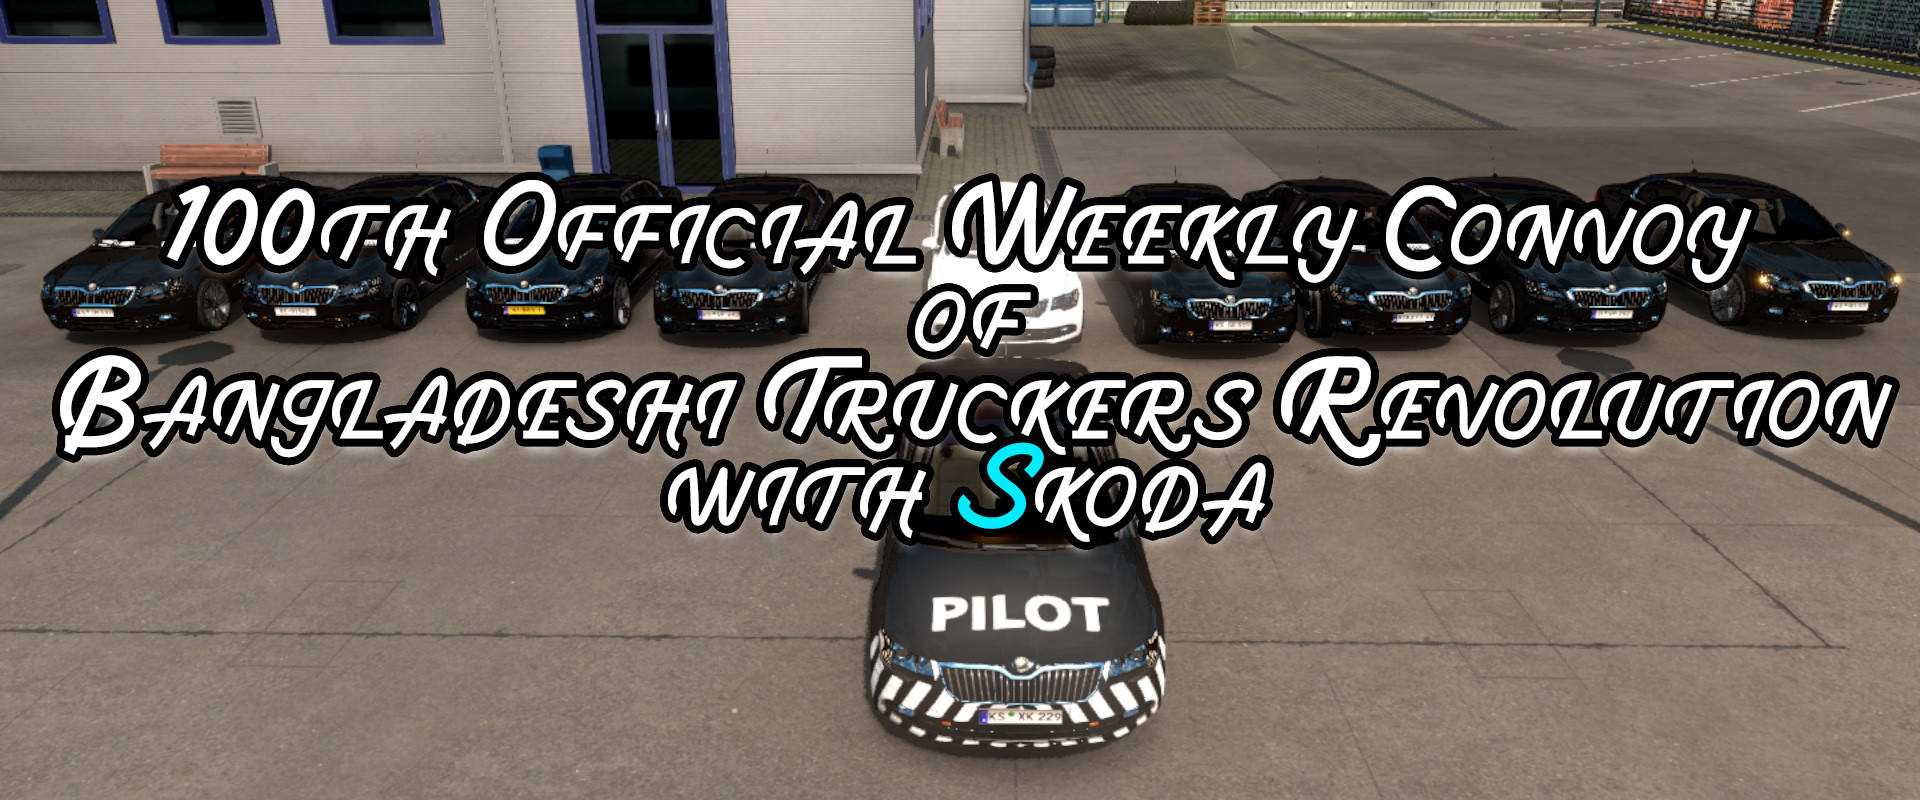 100th Official Weekly Convoy of Bangladeshi Truckers Revolution